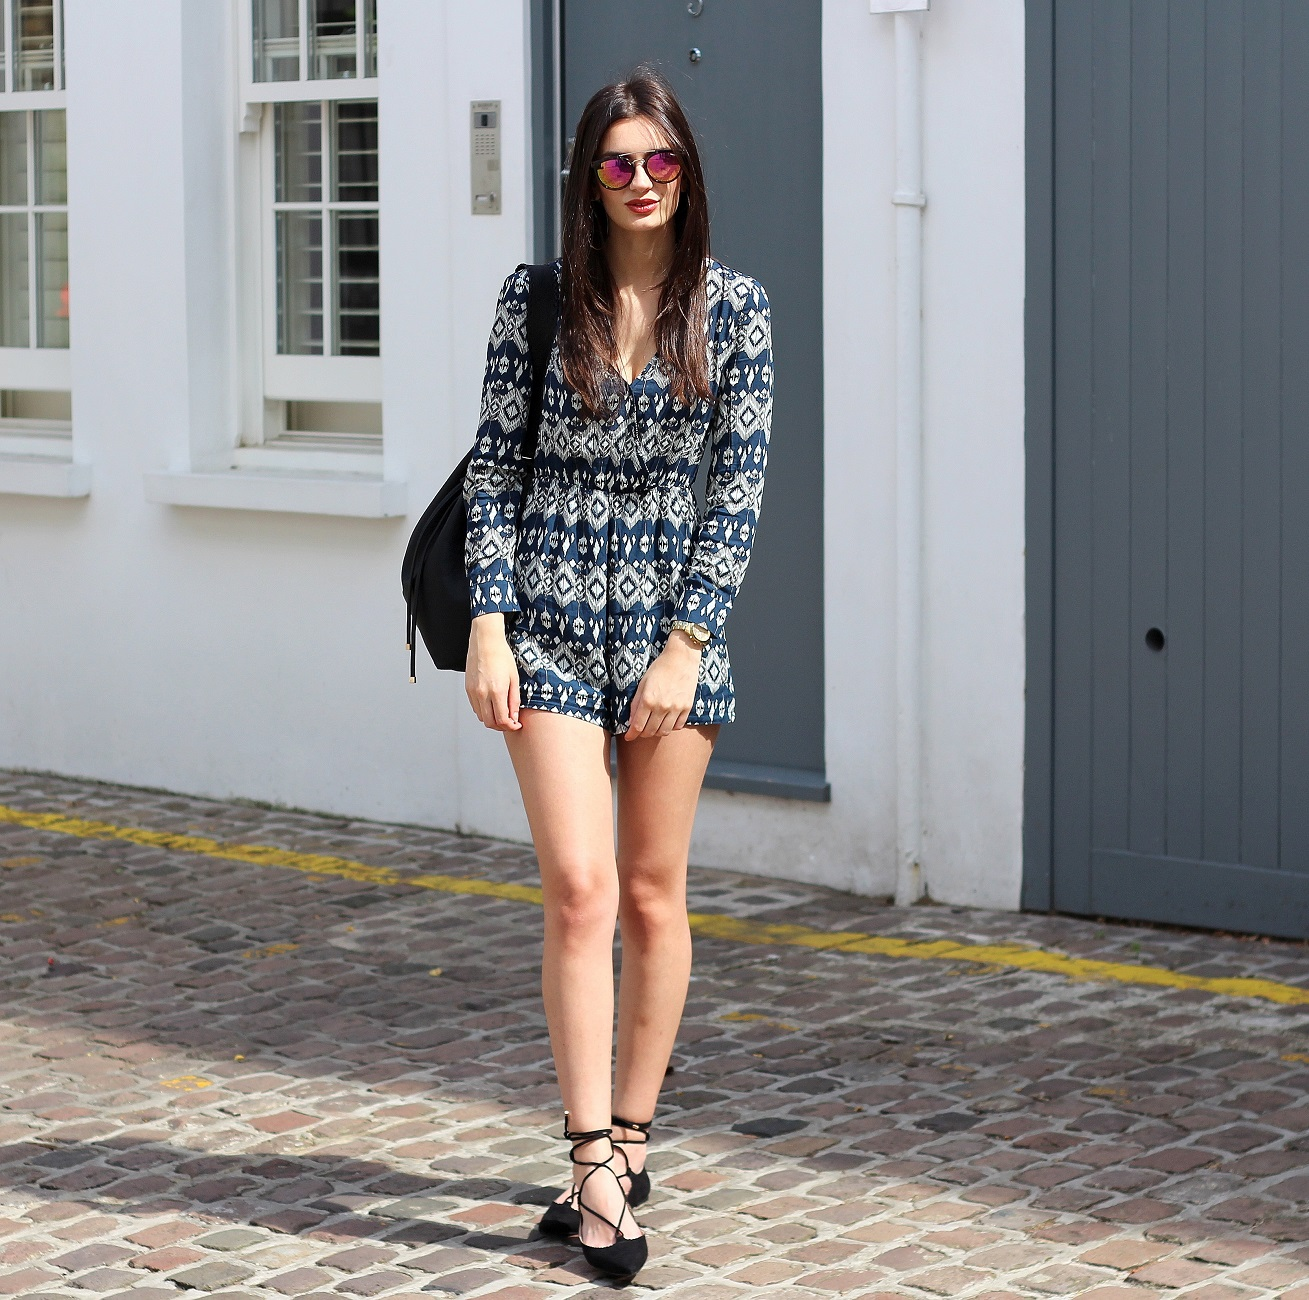 peexo fashion blogger wearing madam rage playsuit and lace up shoes